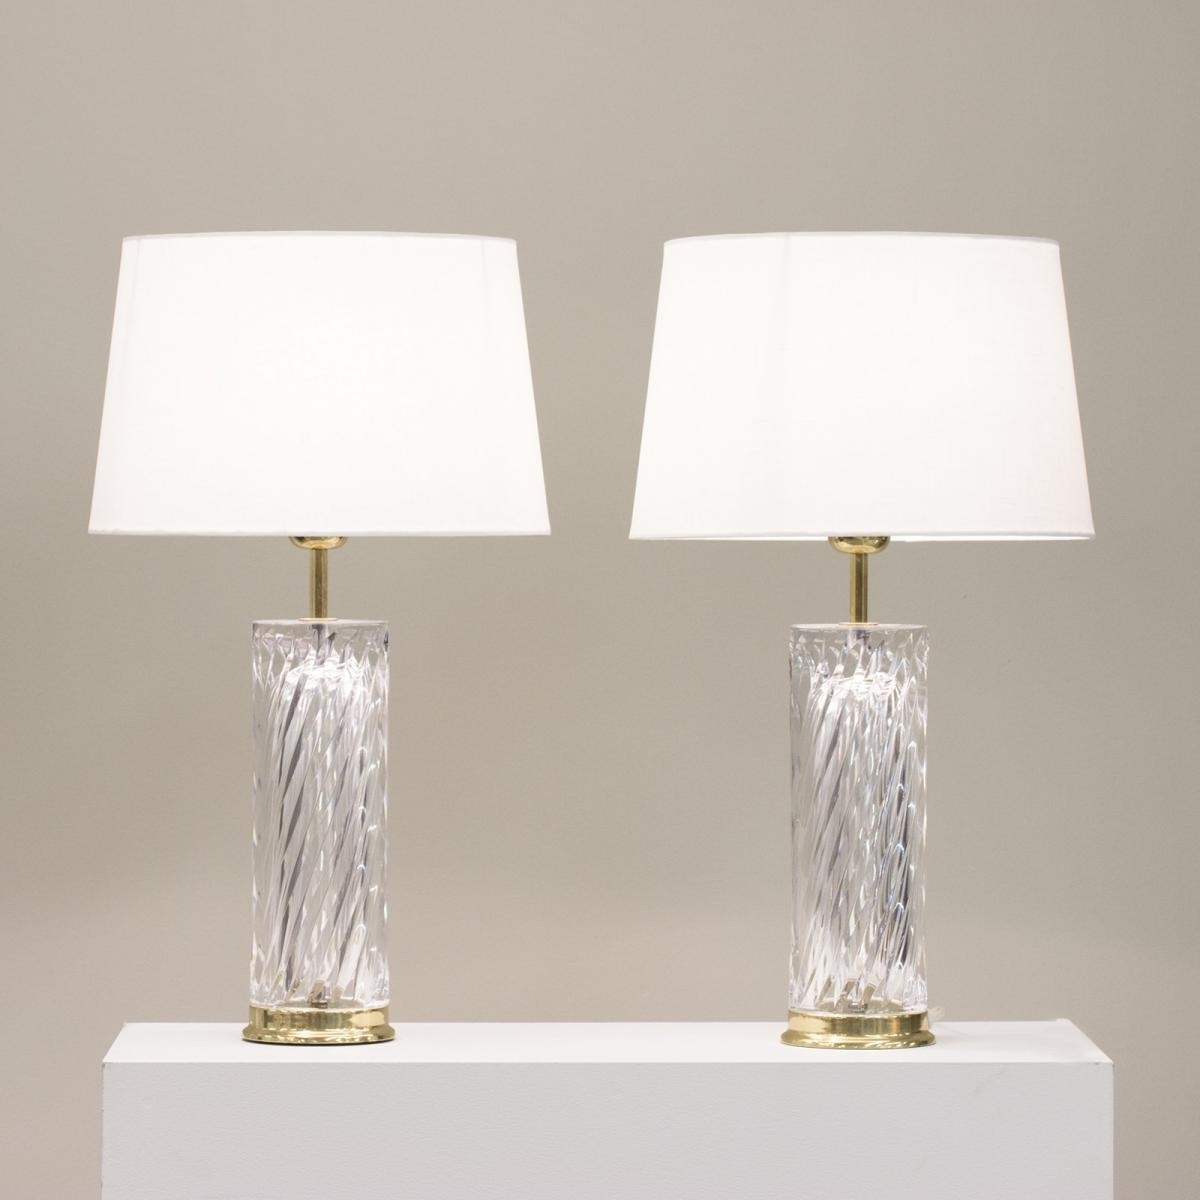 Top 58 Superb Tall Crystal Table Lamps Floor Lamp On Sale For Living Pertaining To 2017 Set Of 2 Living Room Table Lamps (View 5 of 15)